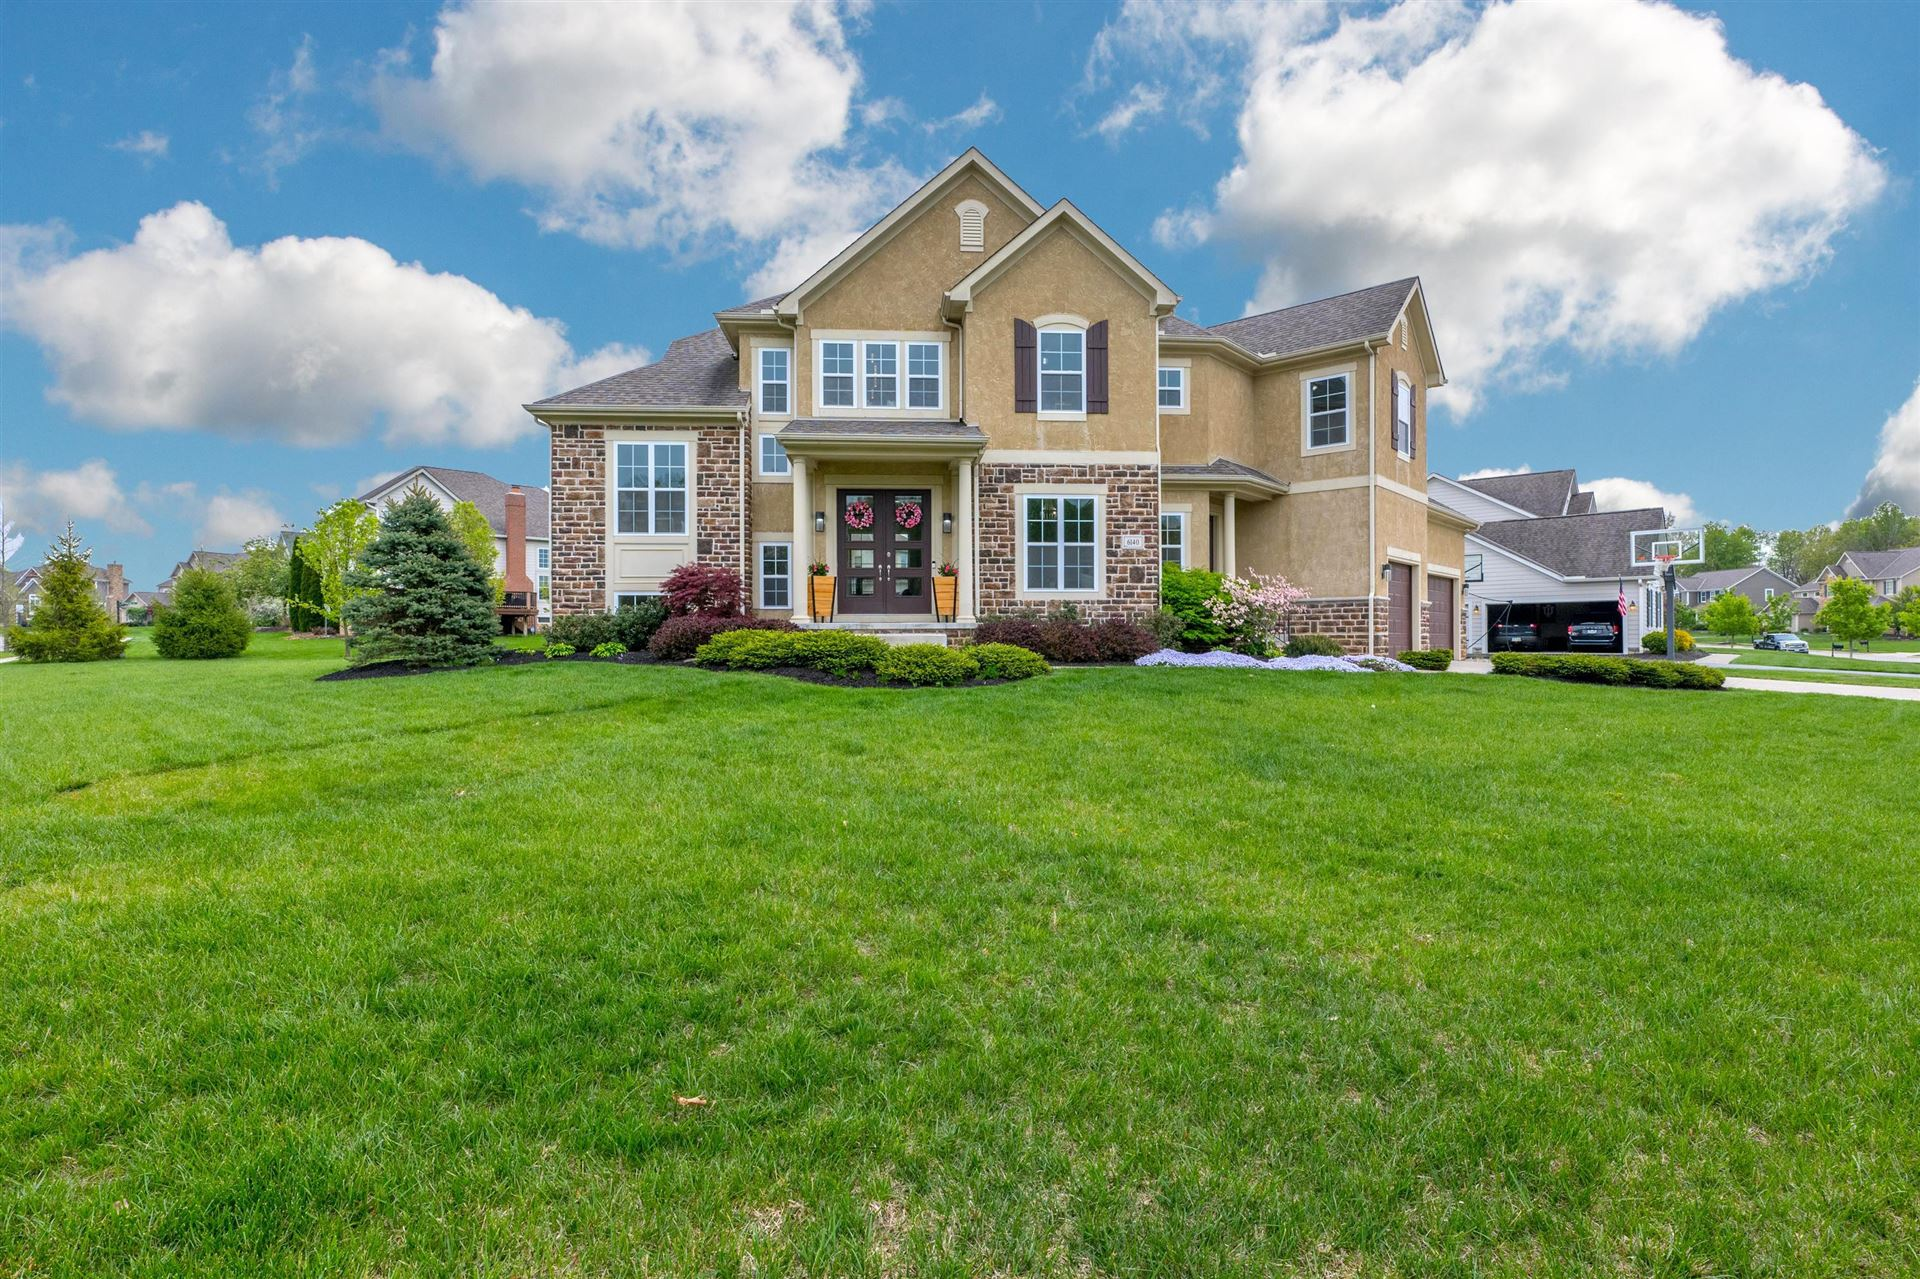 Photo of 6140 Cupola Court, Galena, OH 43021 (MLS # 221013577)